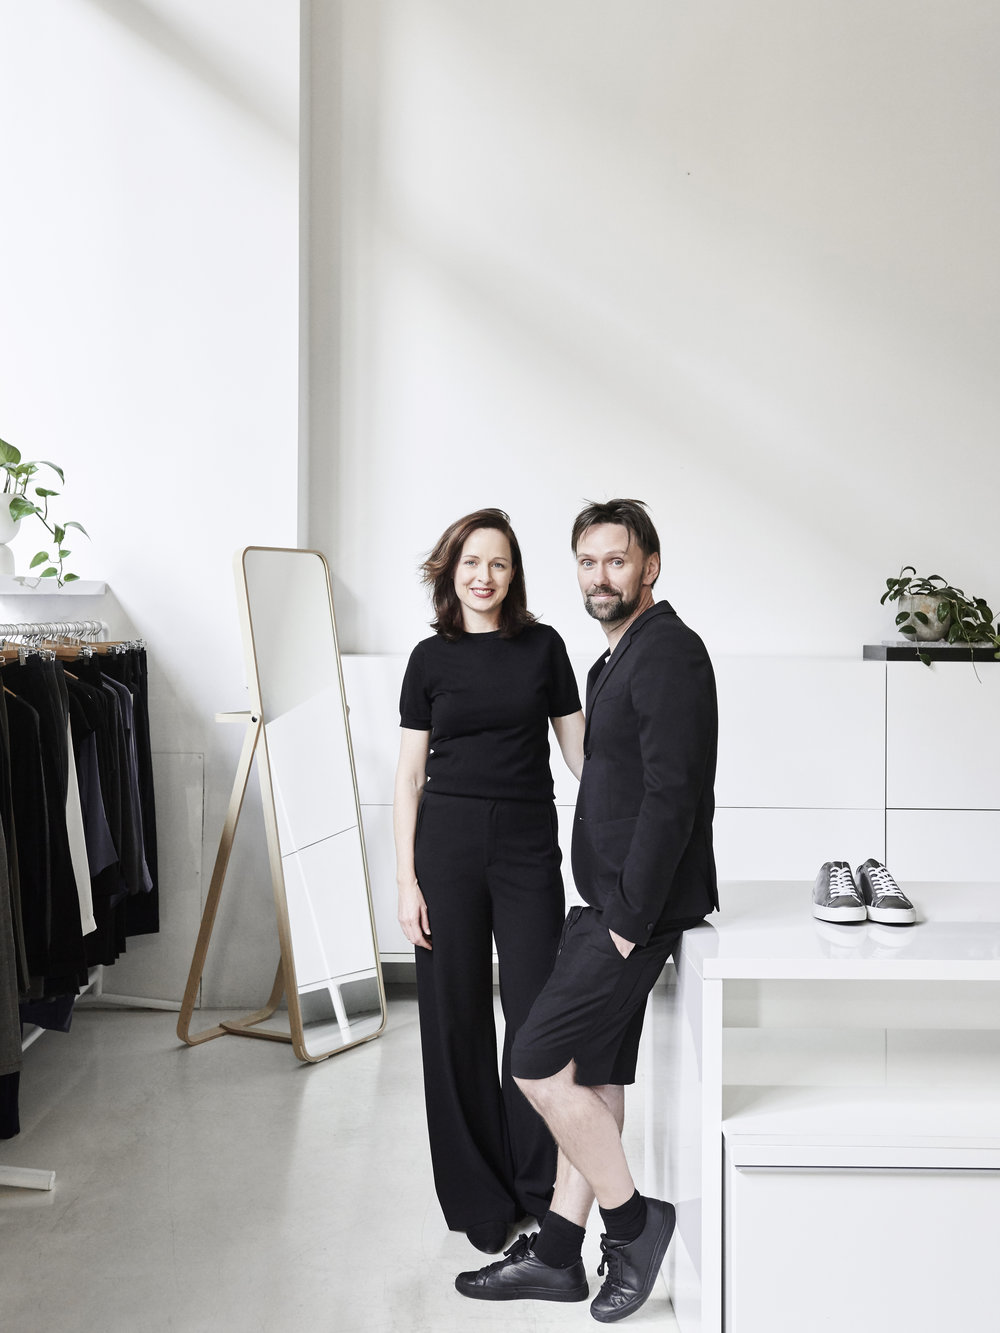 Jane Matthews owns and manages  Swensk  - a Swedish multi-brand fashion store with her husband Mats. Photo by  Eve Wilson